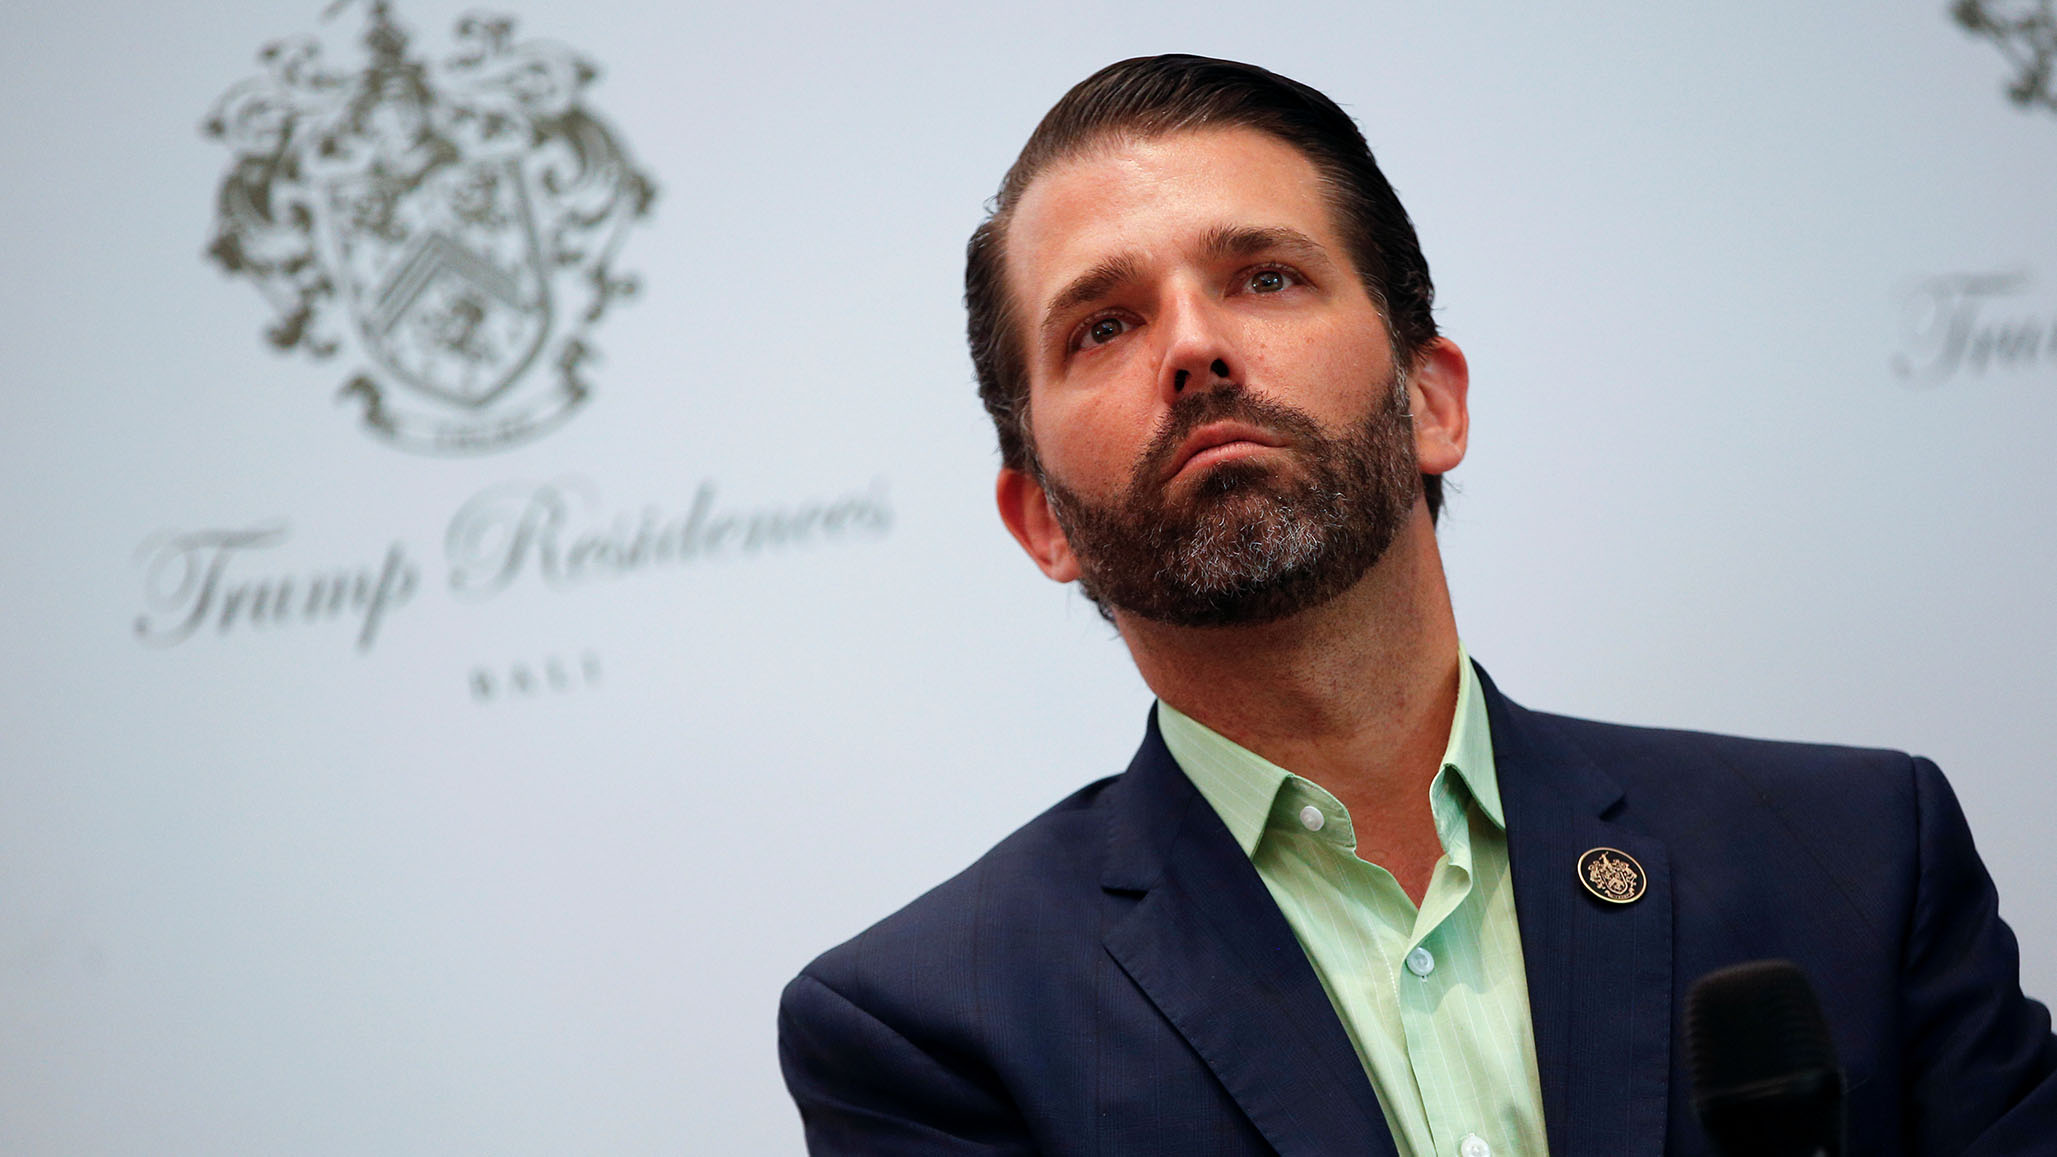 Why Donald Trump Jr. Was Heckled by 'America First Nationalists'